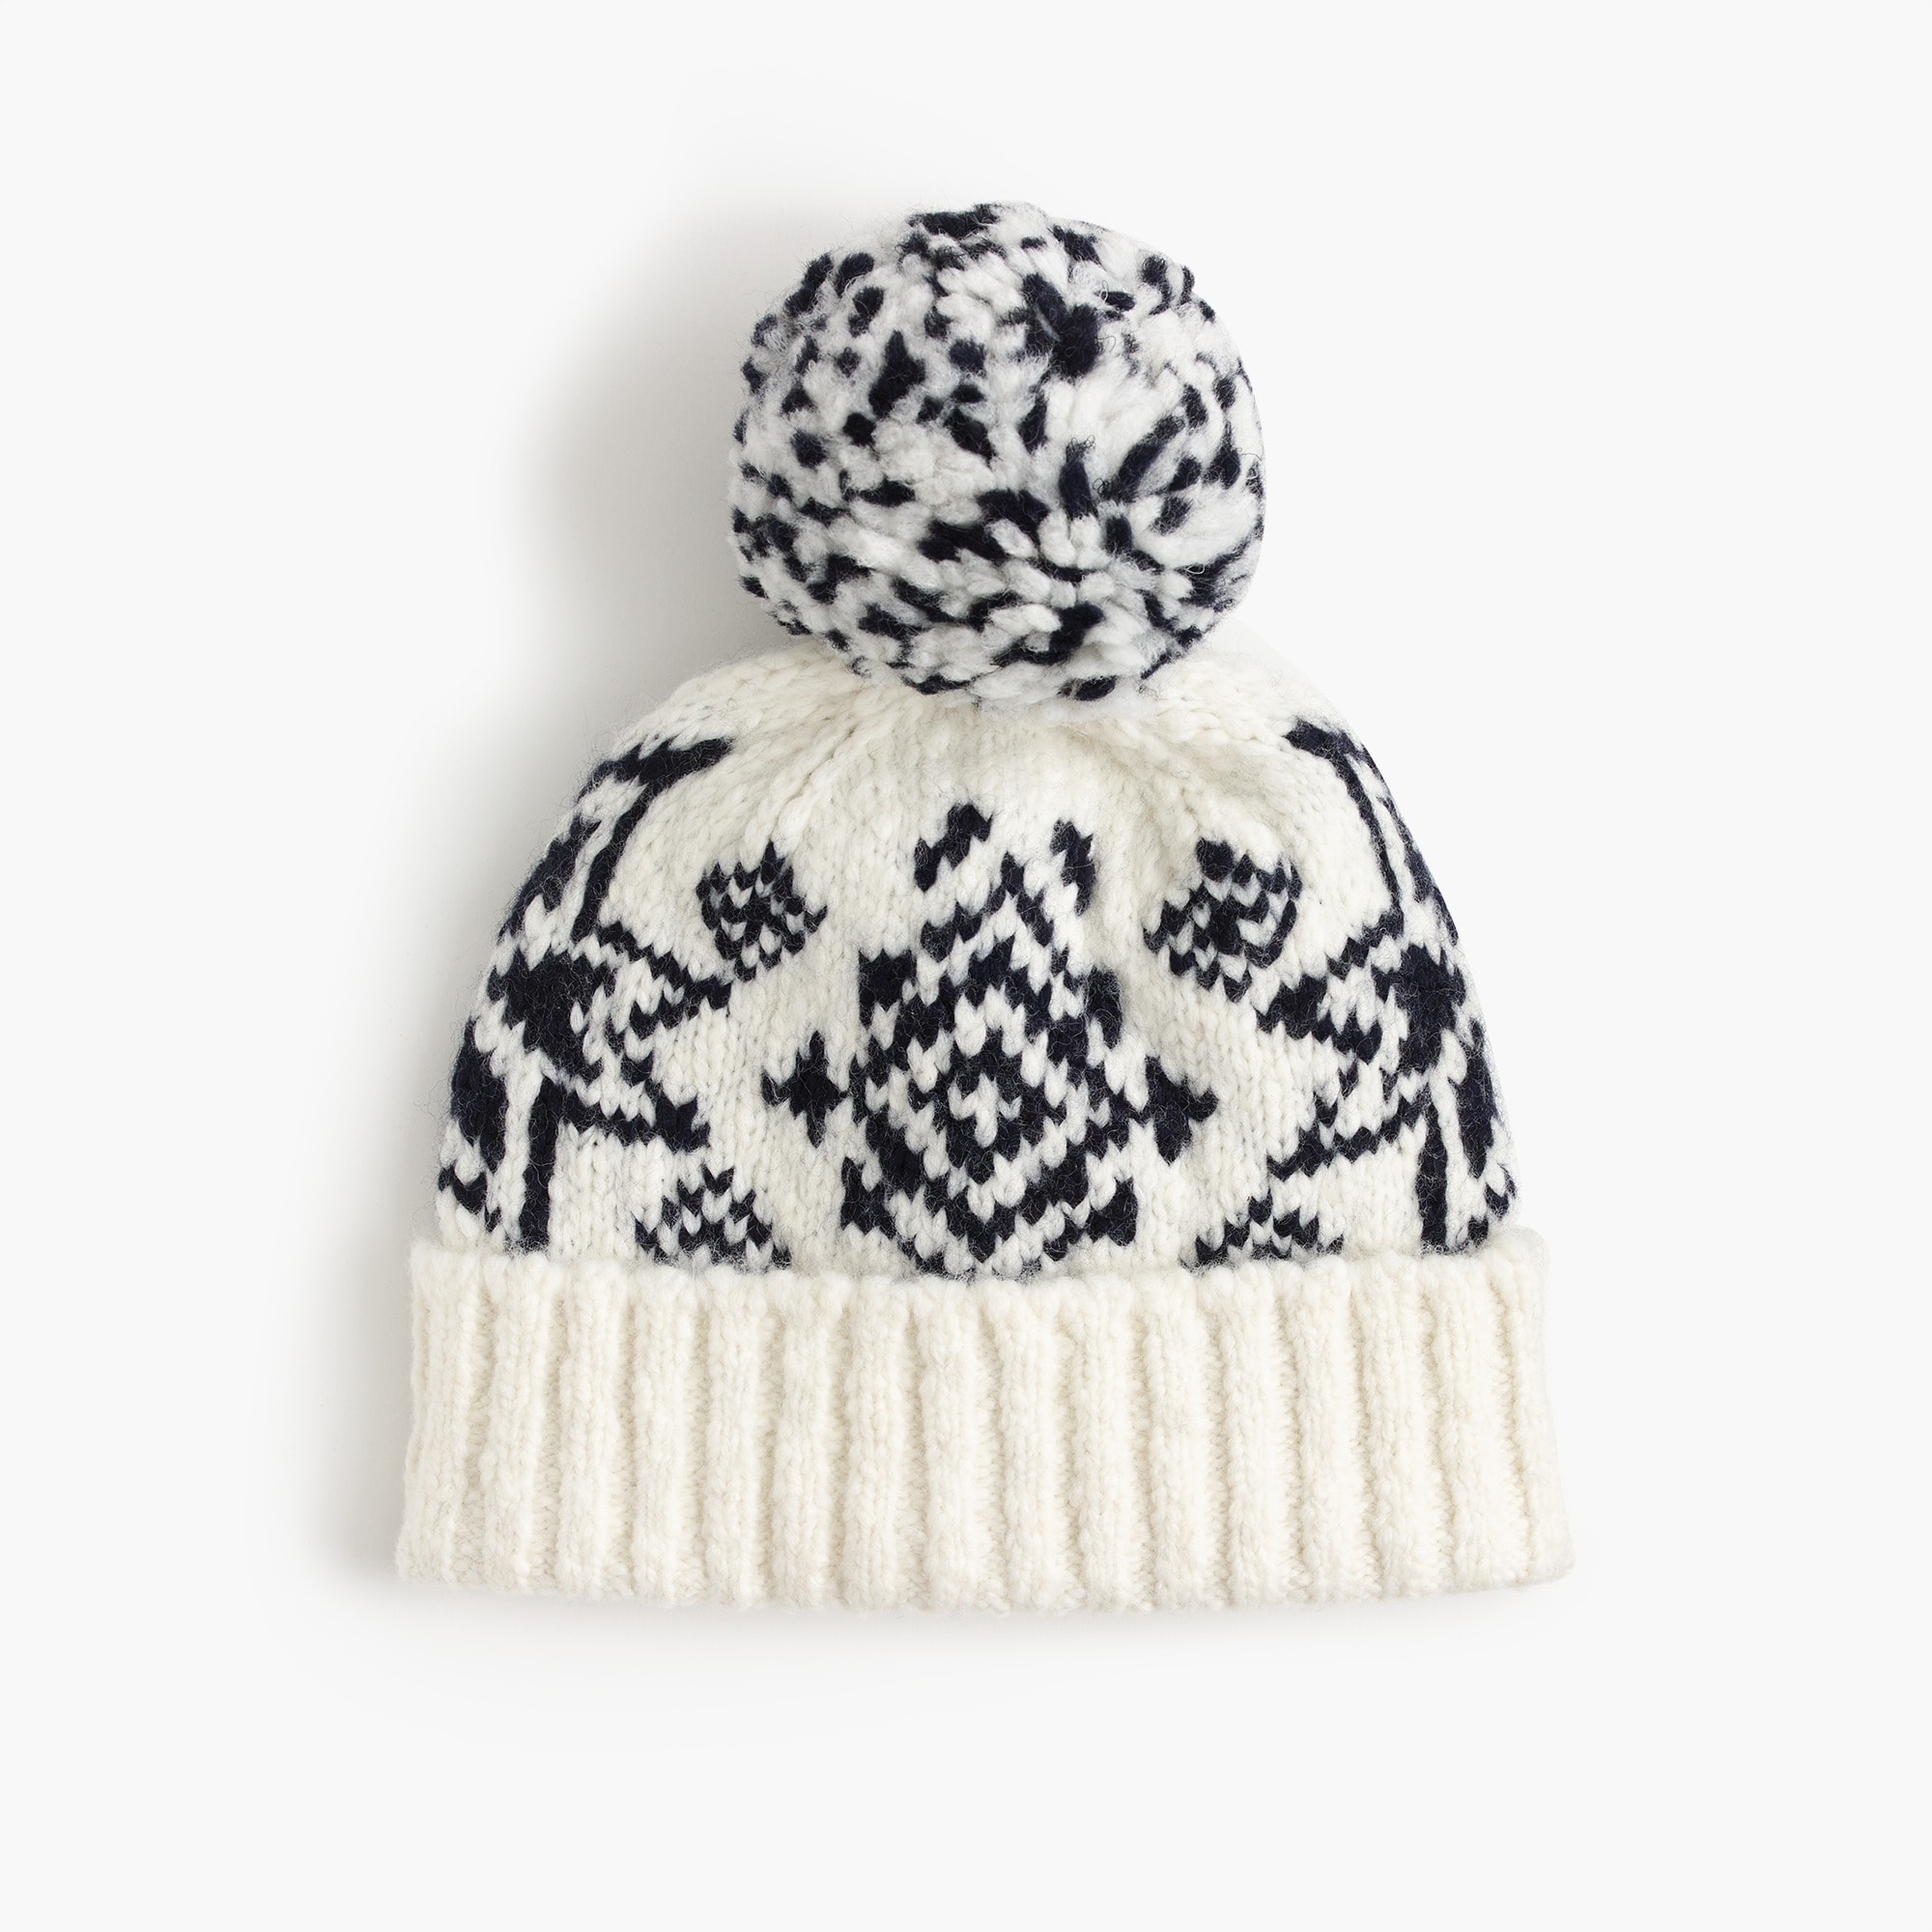 Image 2 for Beanie in oversized Fair Isle